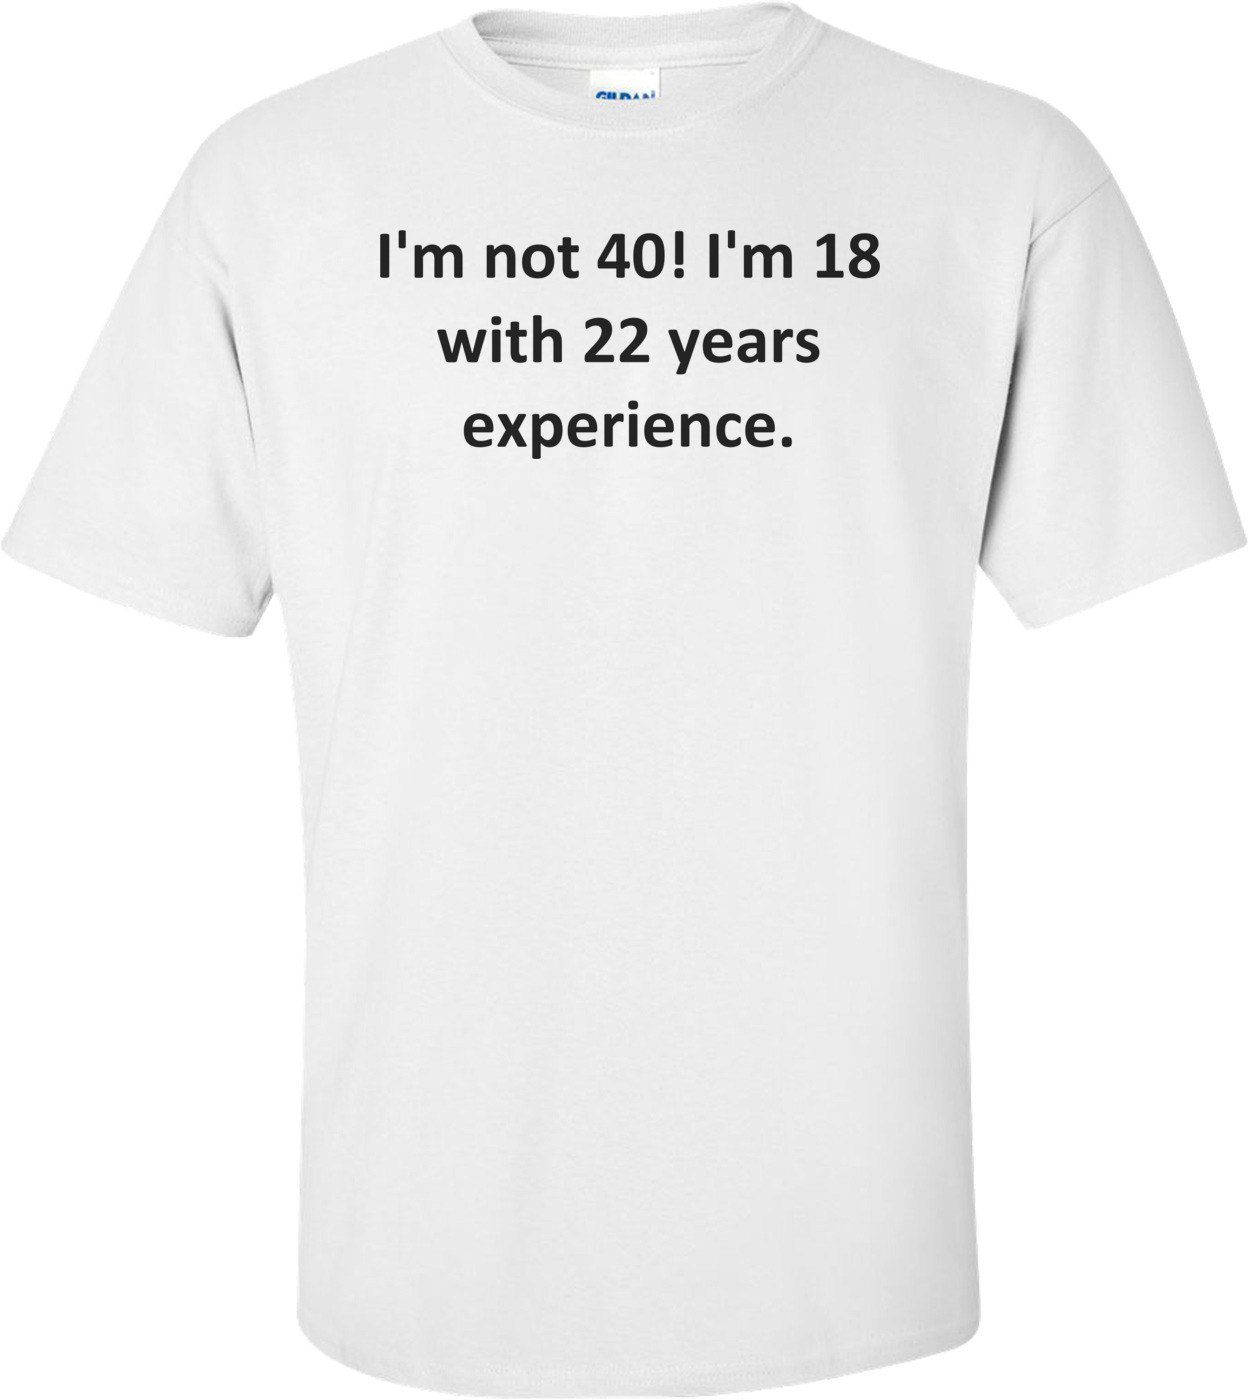 I'm not 40! I'm 18 with 22 years experience. Shirt